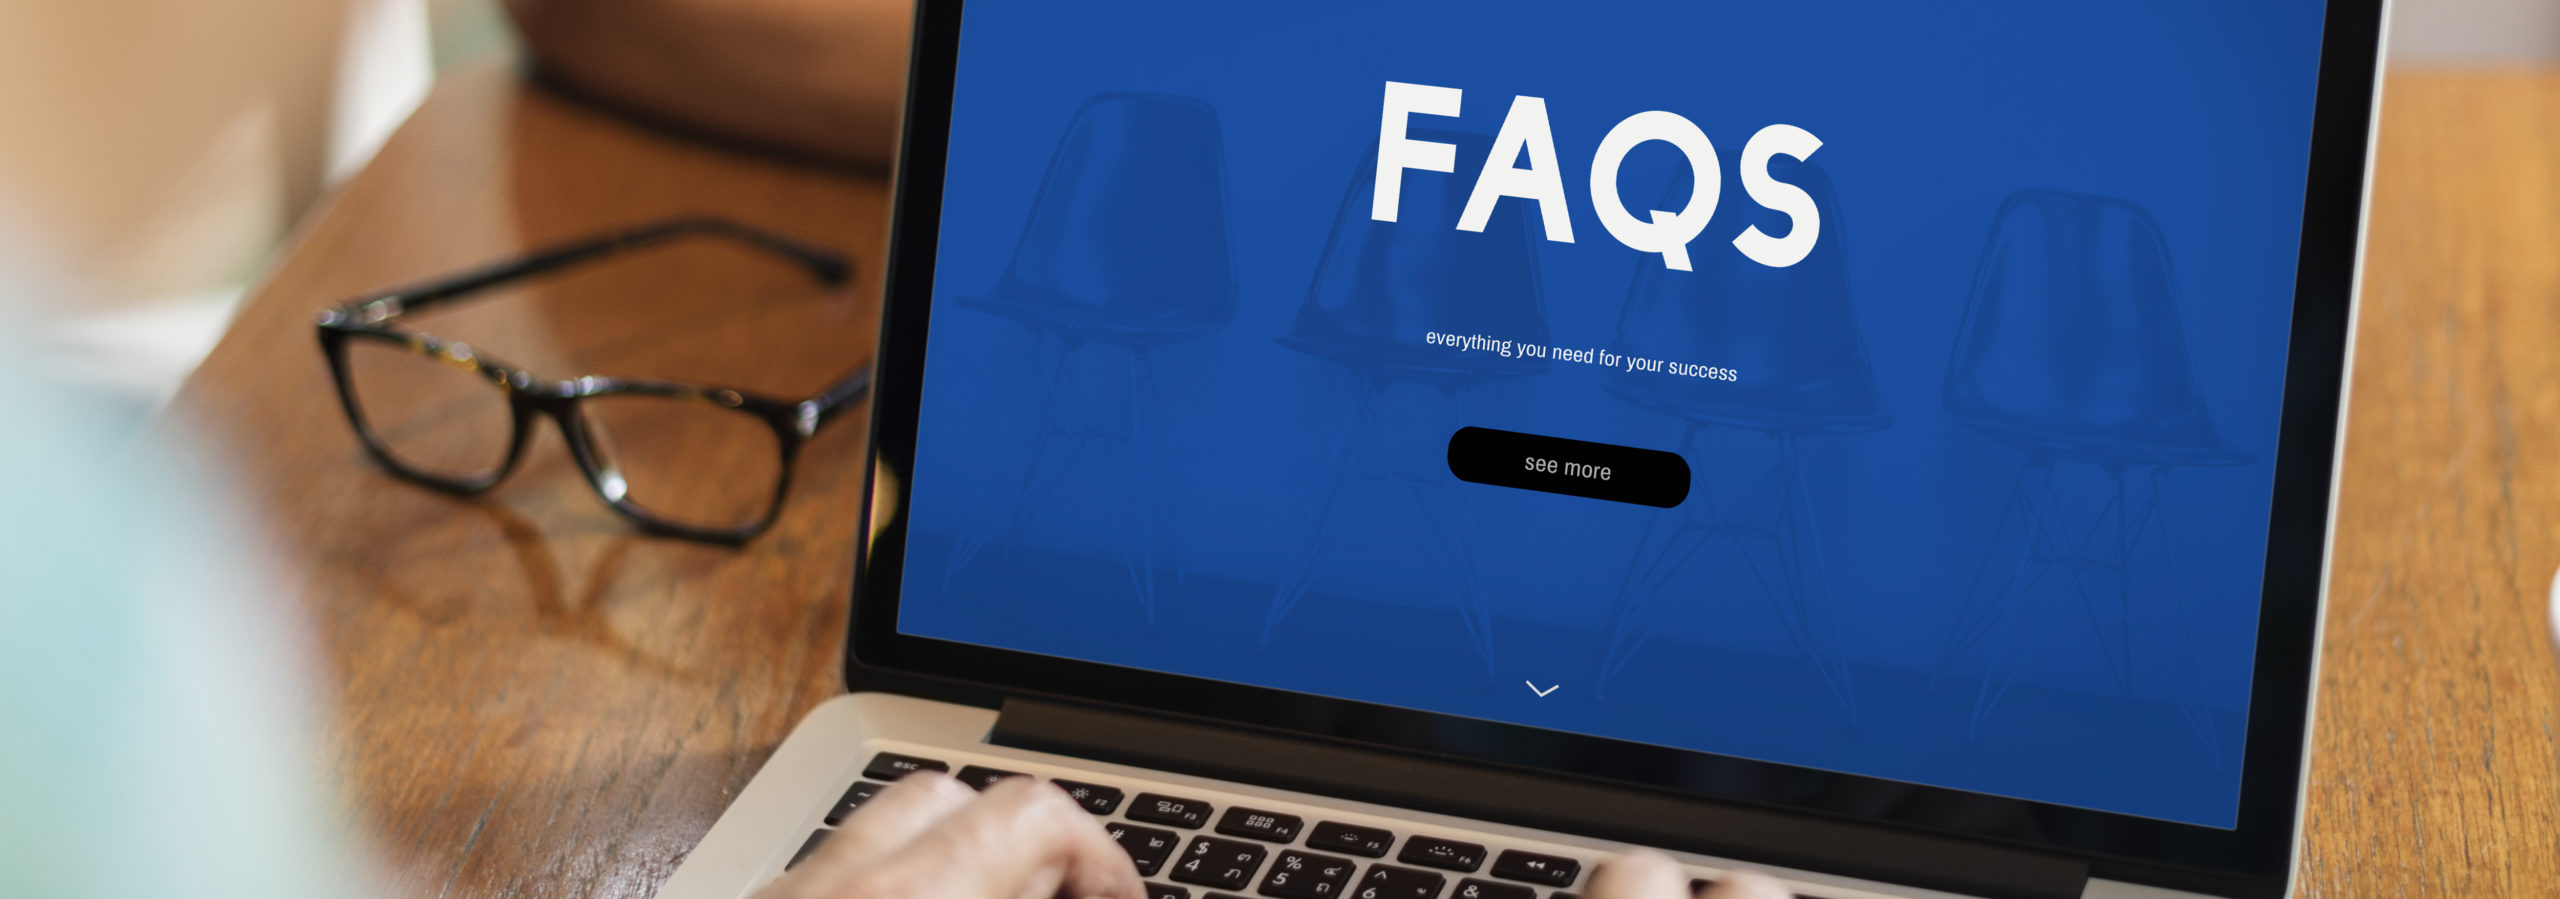 Medicare Education Center FAQs